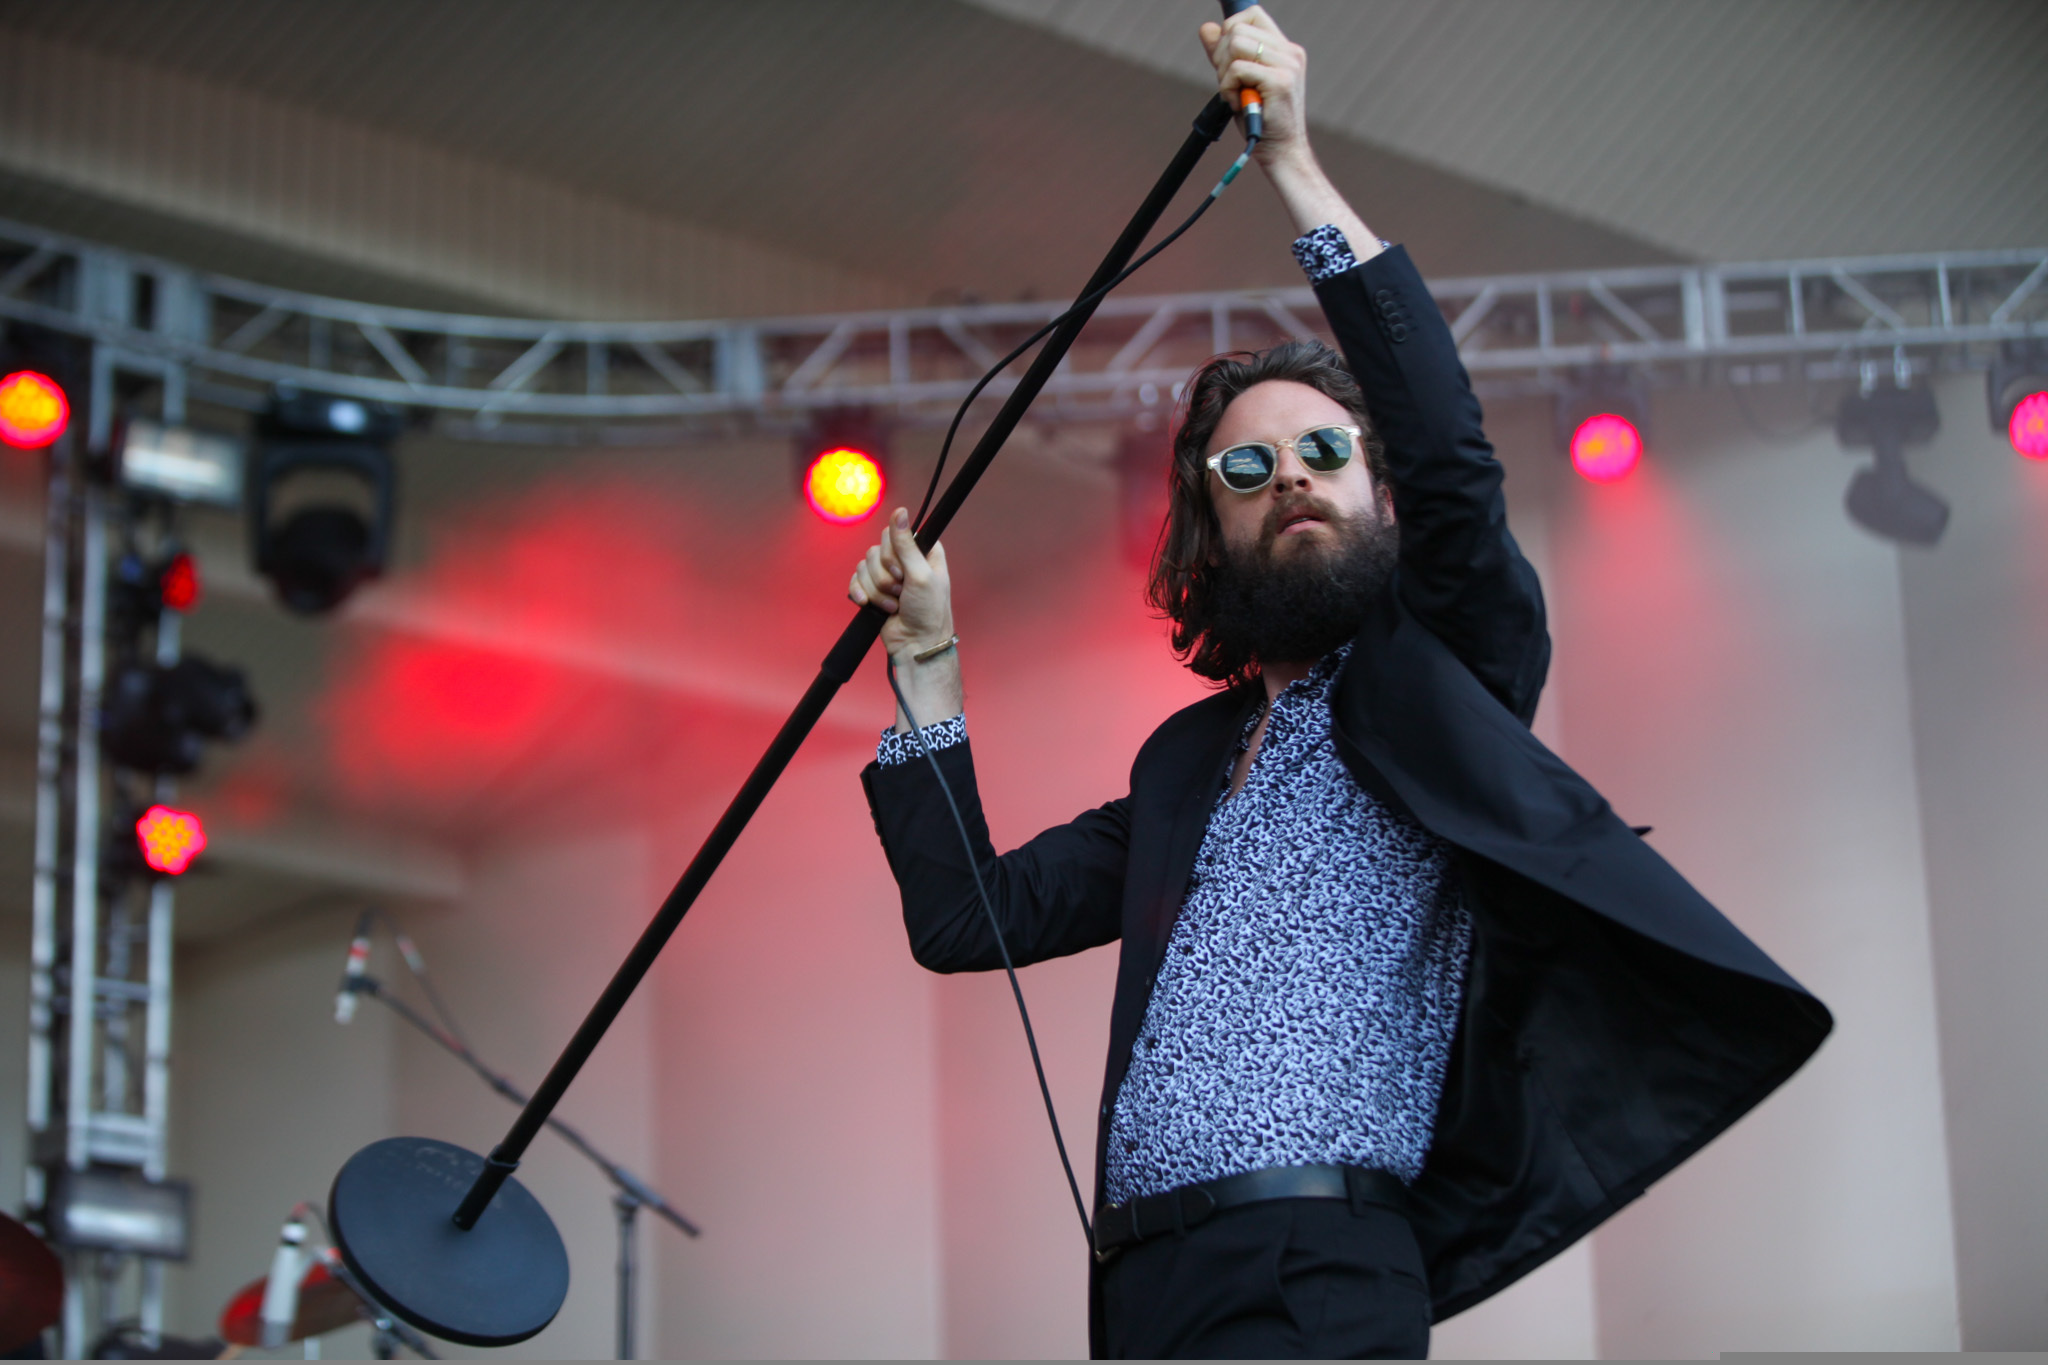 Father John Misty played to an enthusiastic audience during the first day of Lollapalooza on July 31, 2015.